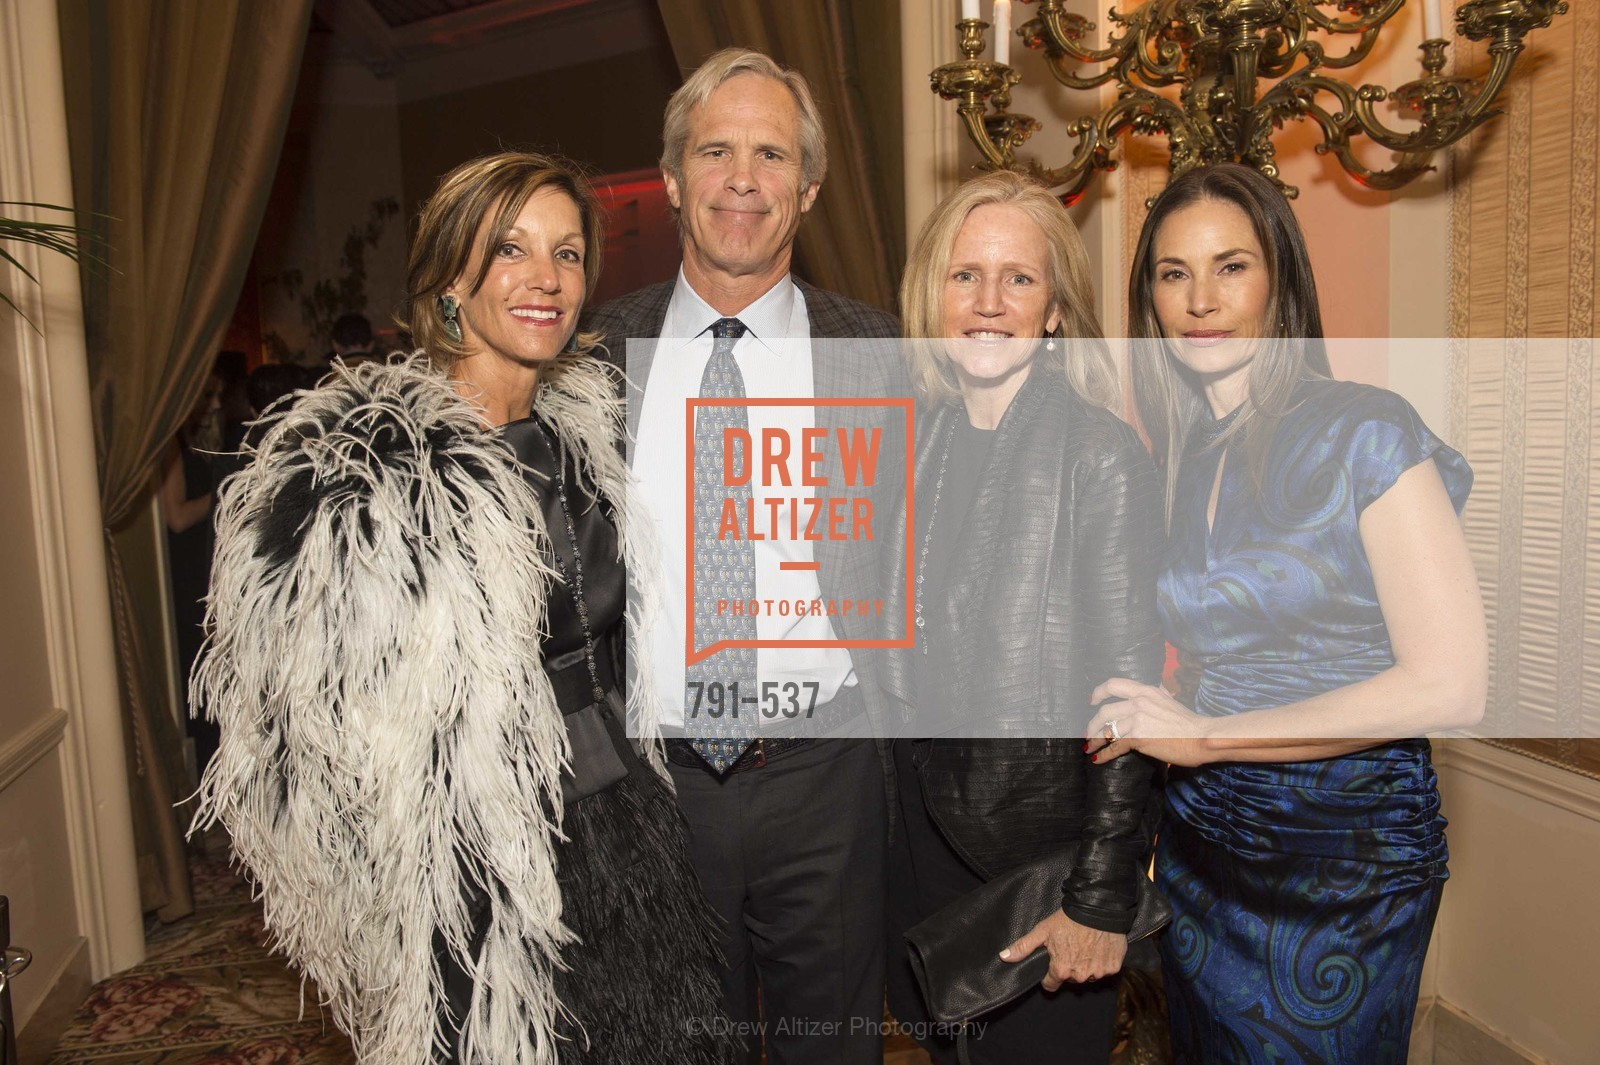 Pamela Rosenkrans, Peter Rosenkrans, Cindy Shove, Patty Rosenfeld, TOP OF THE MARK'S 75TH Anniversary Party, US, November 7th, 2014,Drew Altizer, Drew Altizer Photography, full-service agency, private events, San Francisco photographer, photographer california